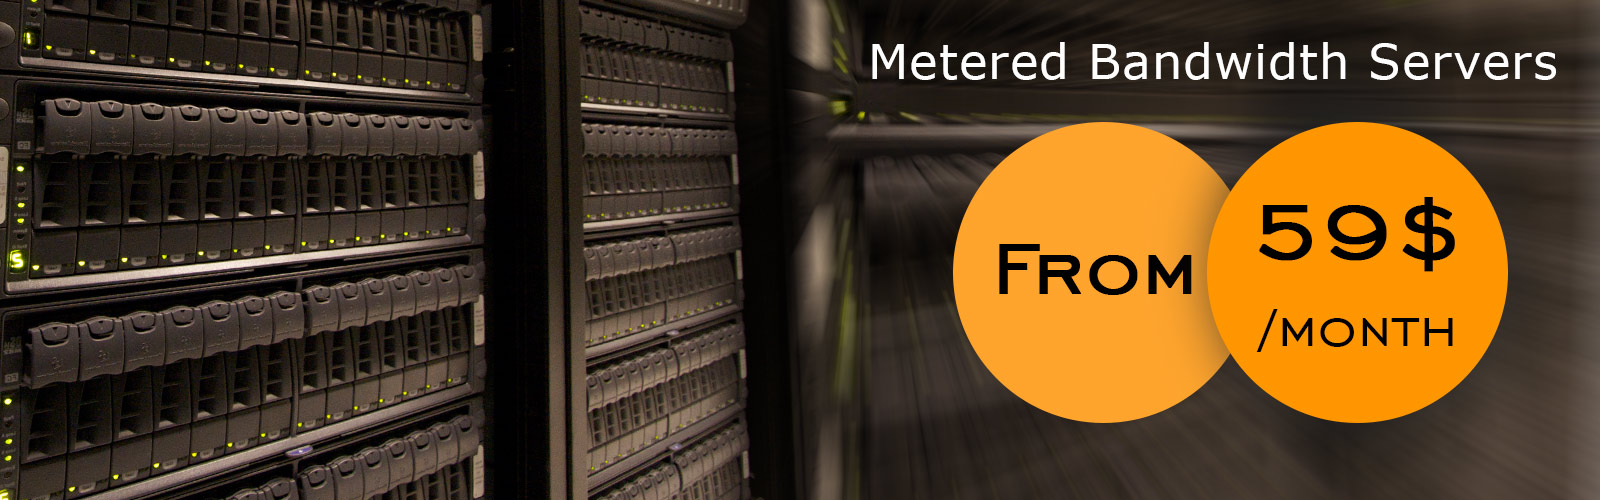 Metered Bandwidth Servers